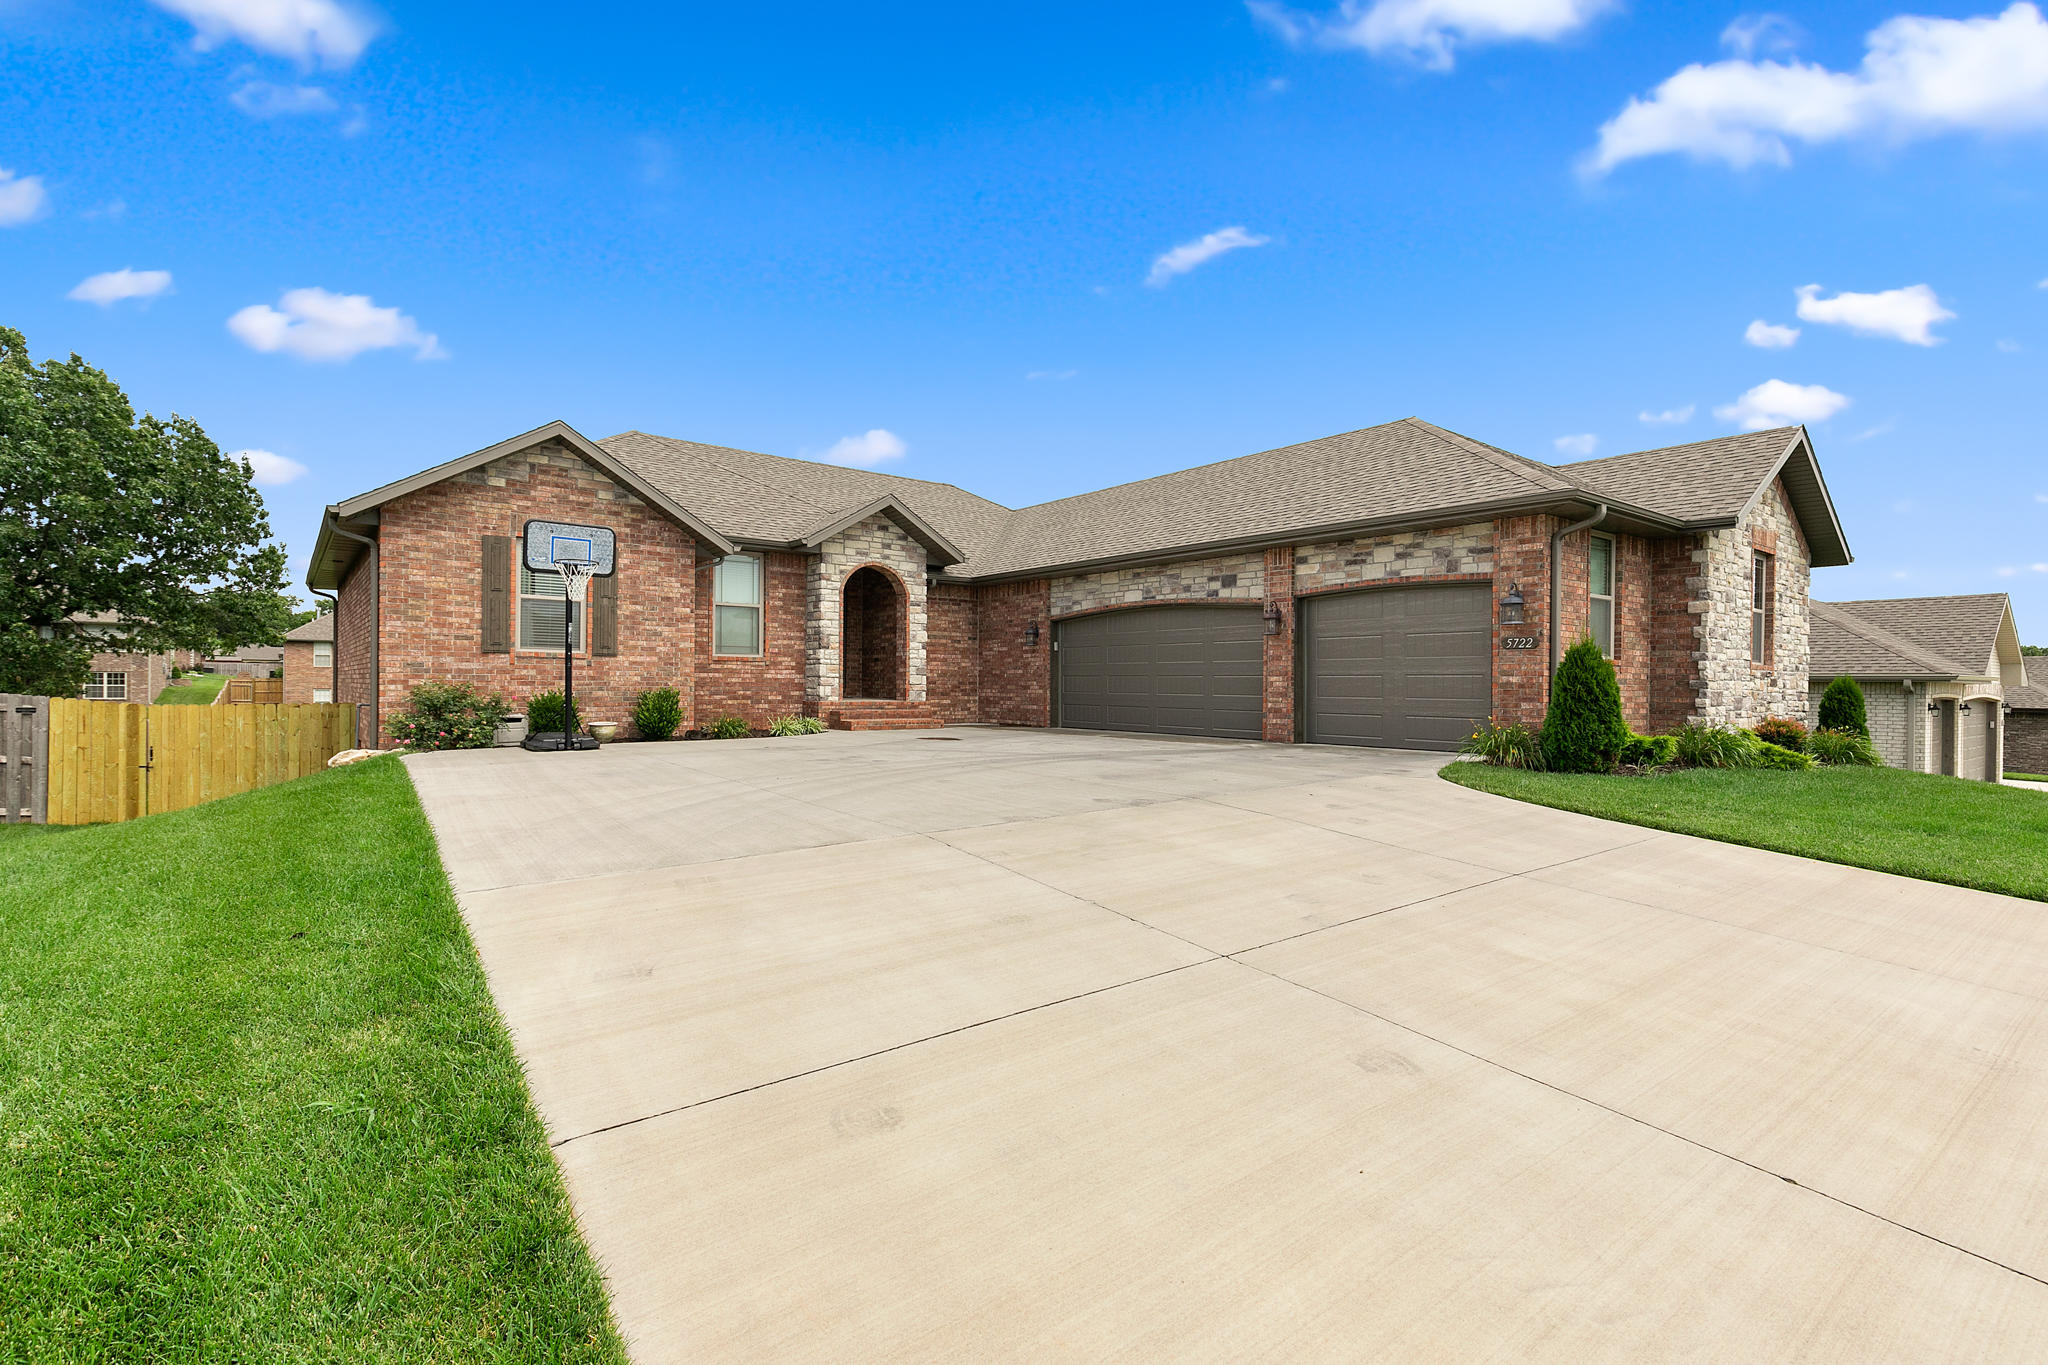 5722 South Cottonwood Drive Battlefield, MO 65619